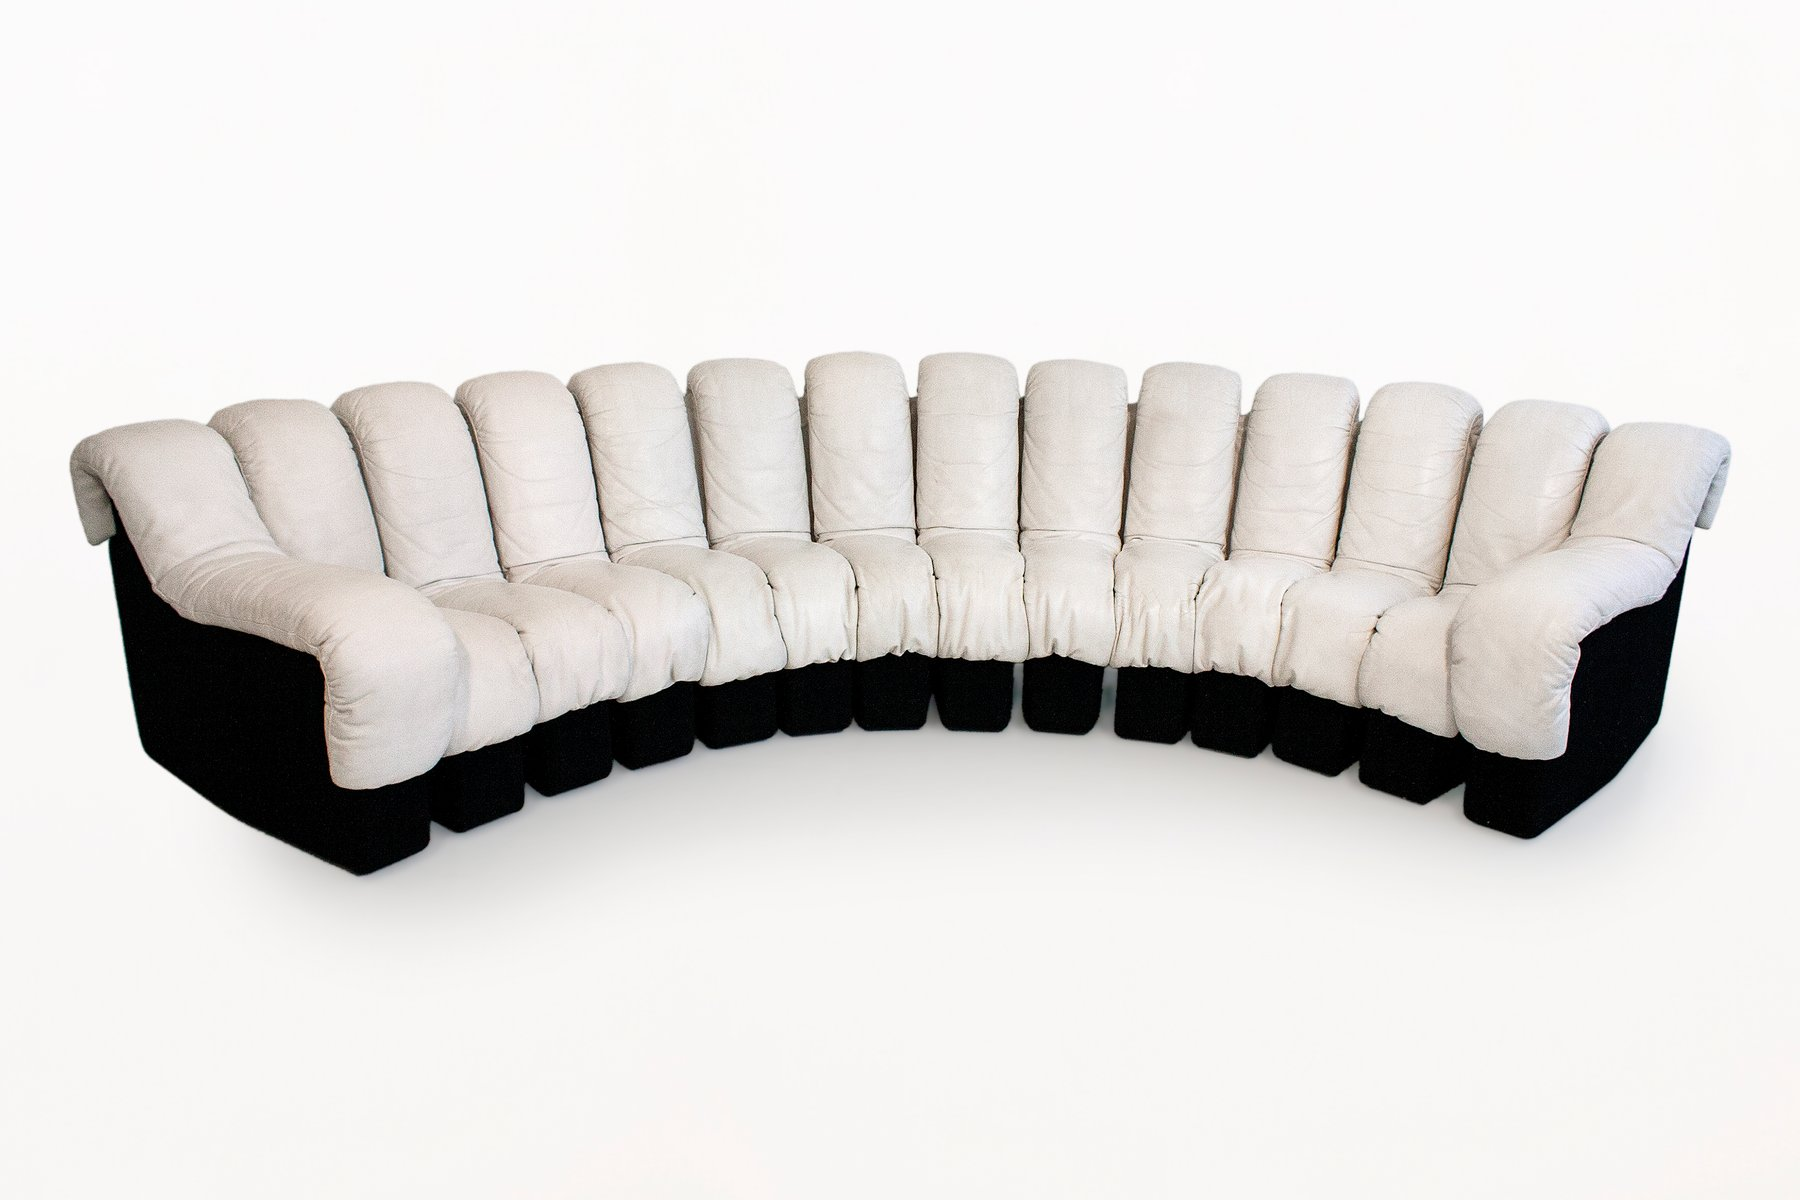 Full Size of De Sede Furniture Sofa Preis Gebraucht Sessel Preise Leder For Sale Usa Used Kaufen Uk Sleeper Endless Ds 600 By Bed Couch Schweizer Non Stop Von Runder Sofa De Sede Sofa